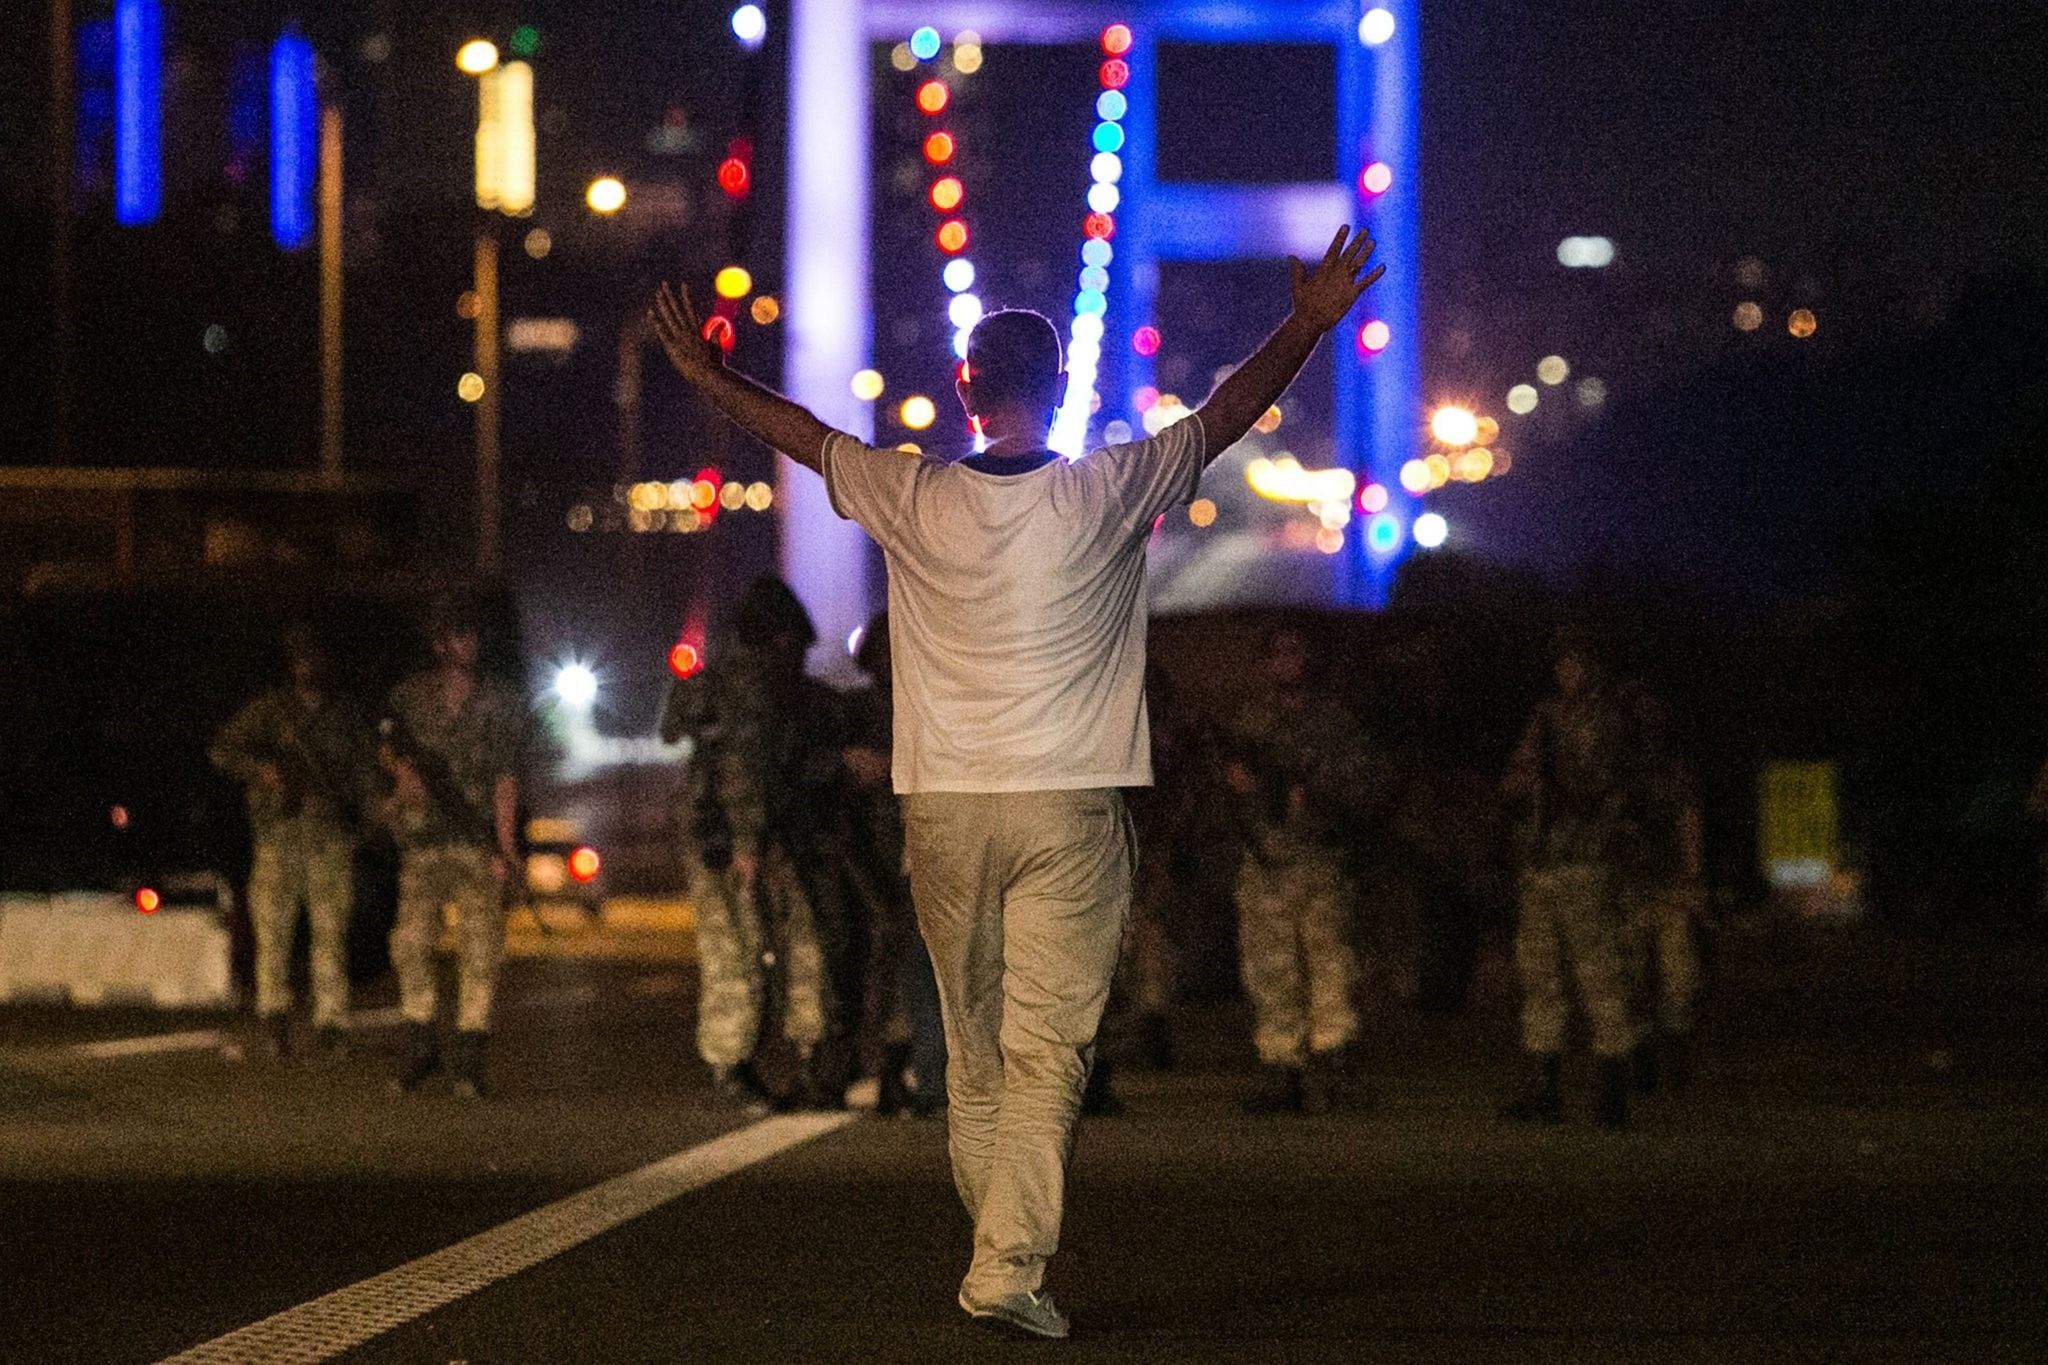 A man approaches putschist troops on the Bosporus Bridge during the coup attempt. The bridge was one of the places where the putschists who were sentenced to life in Istanbul on Friday deployed troop and armored vehicles.